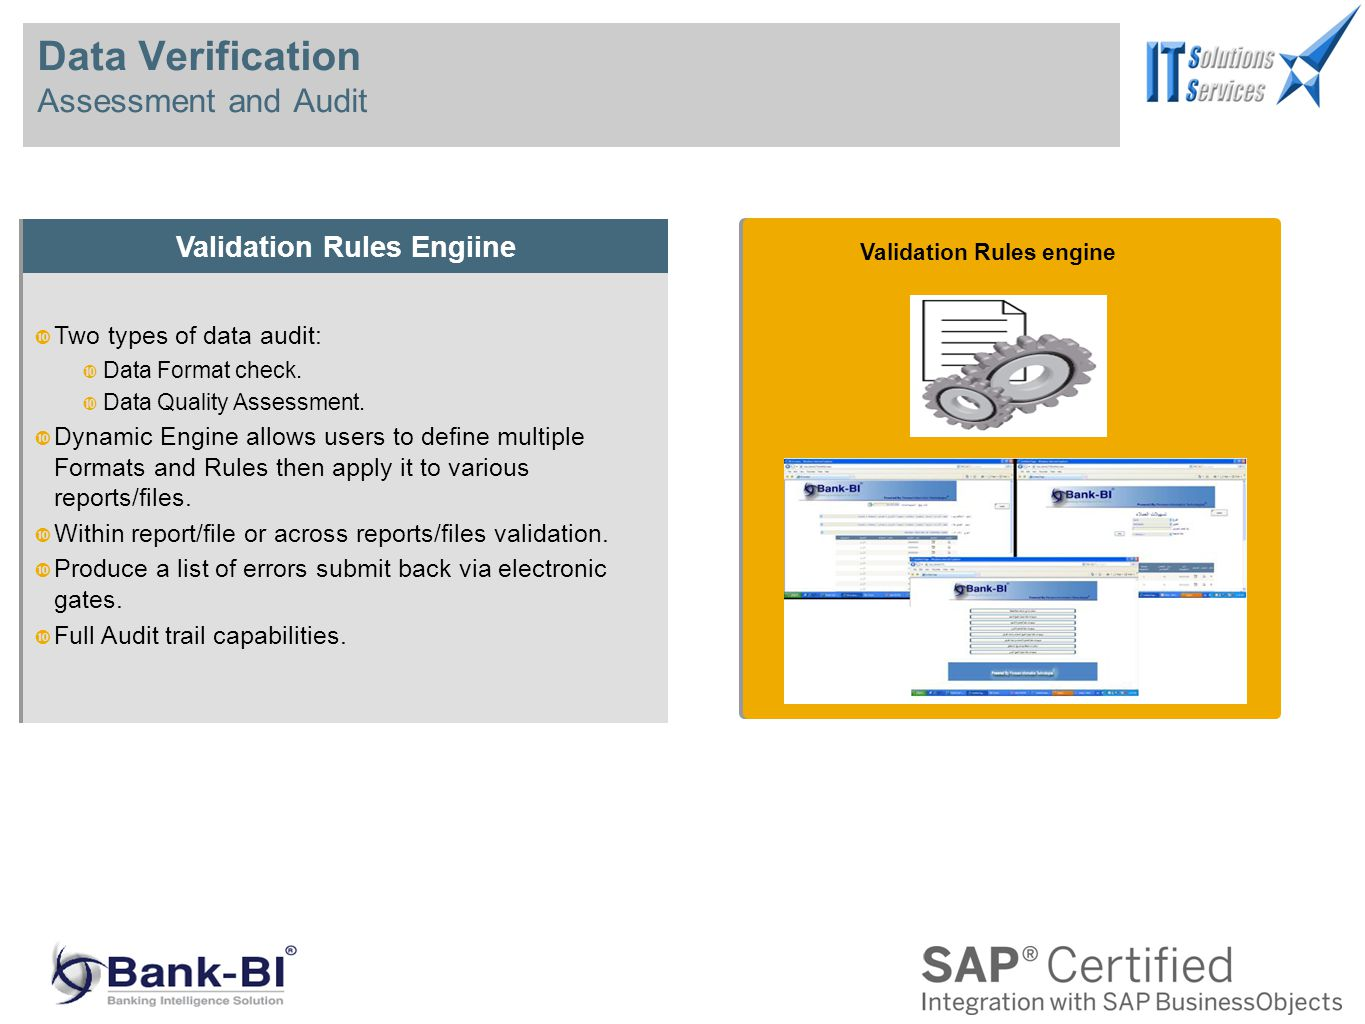 Data Verification Assessment and Audit Validation Rules Engiine Two types of data audit: Data Format check.